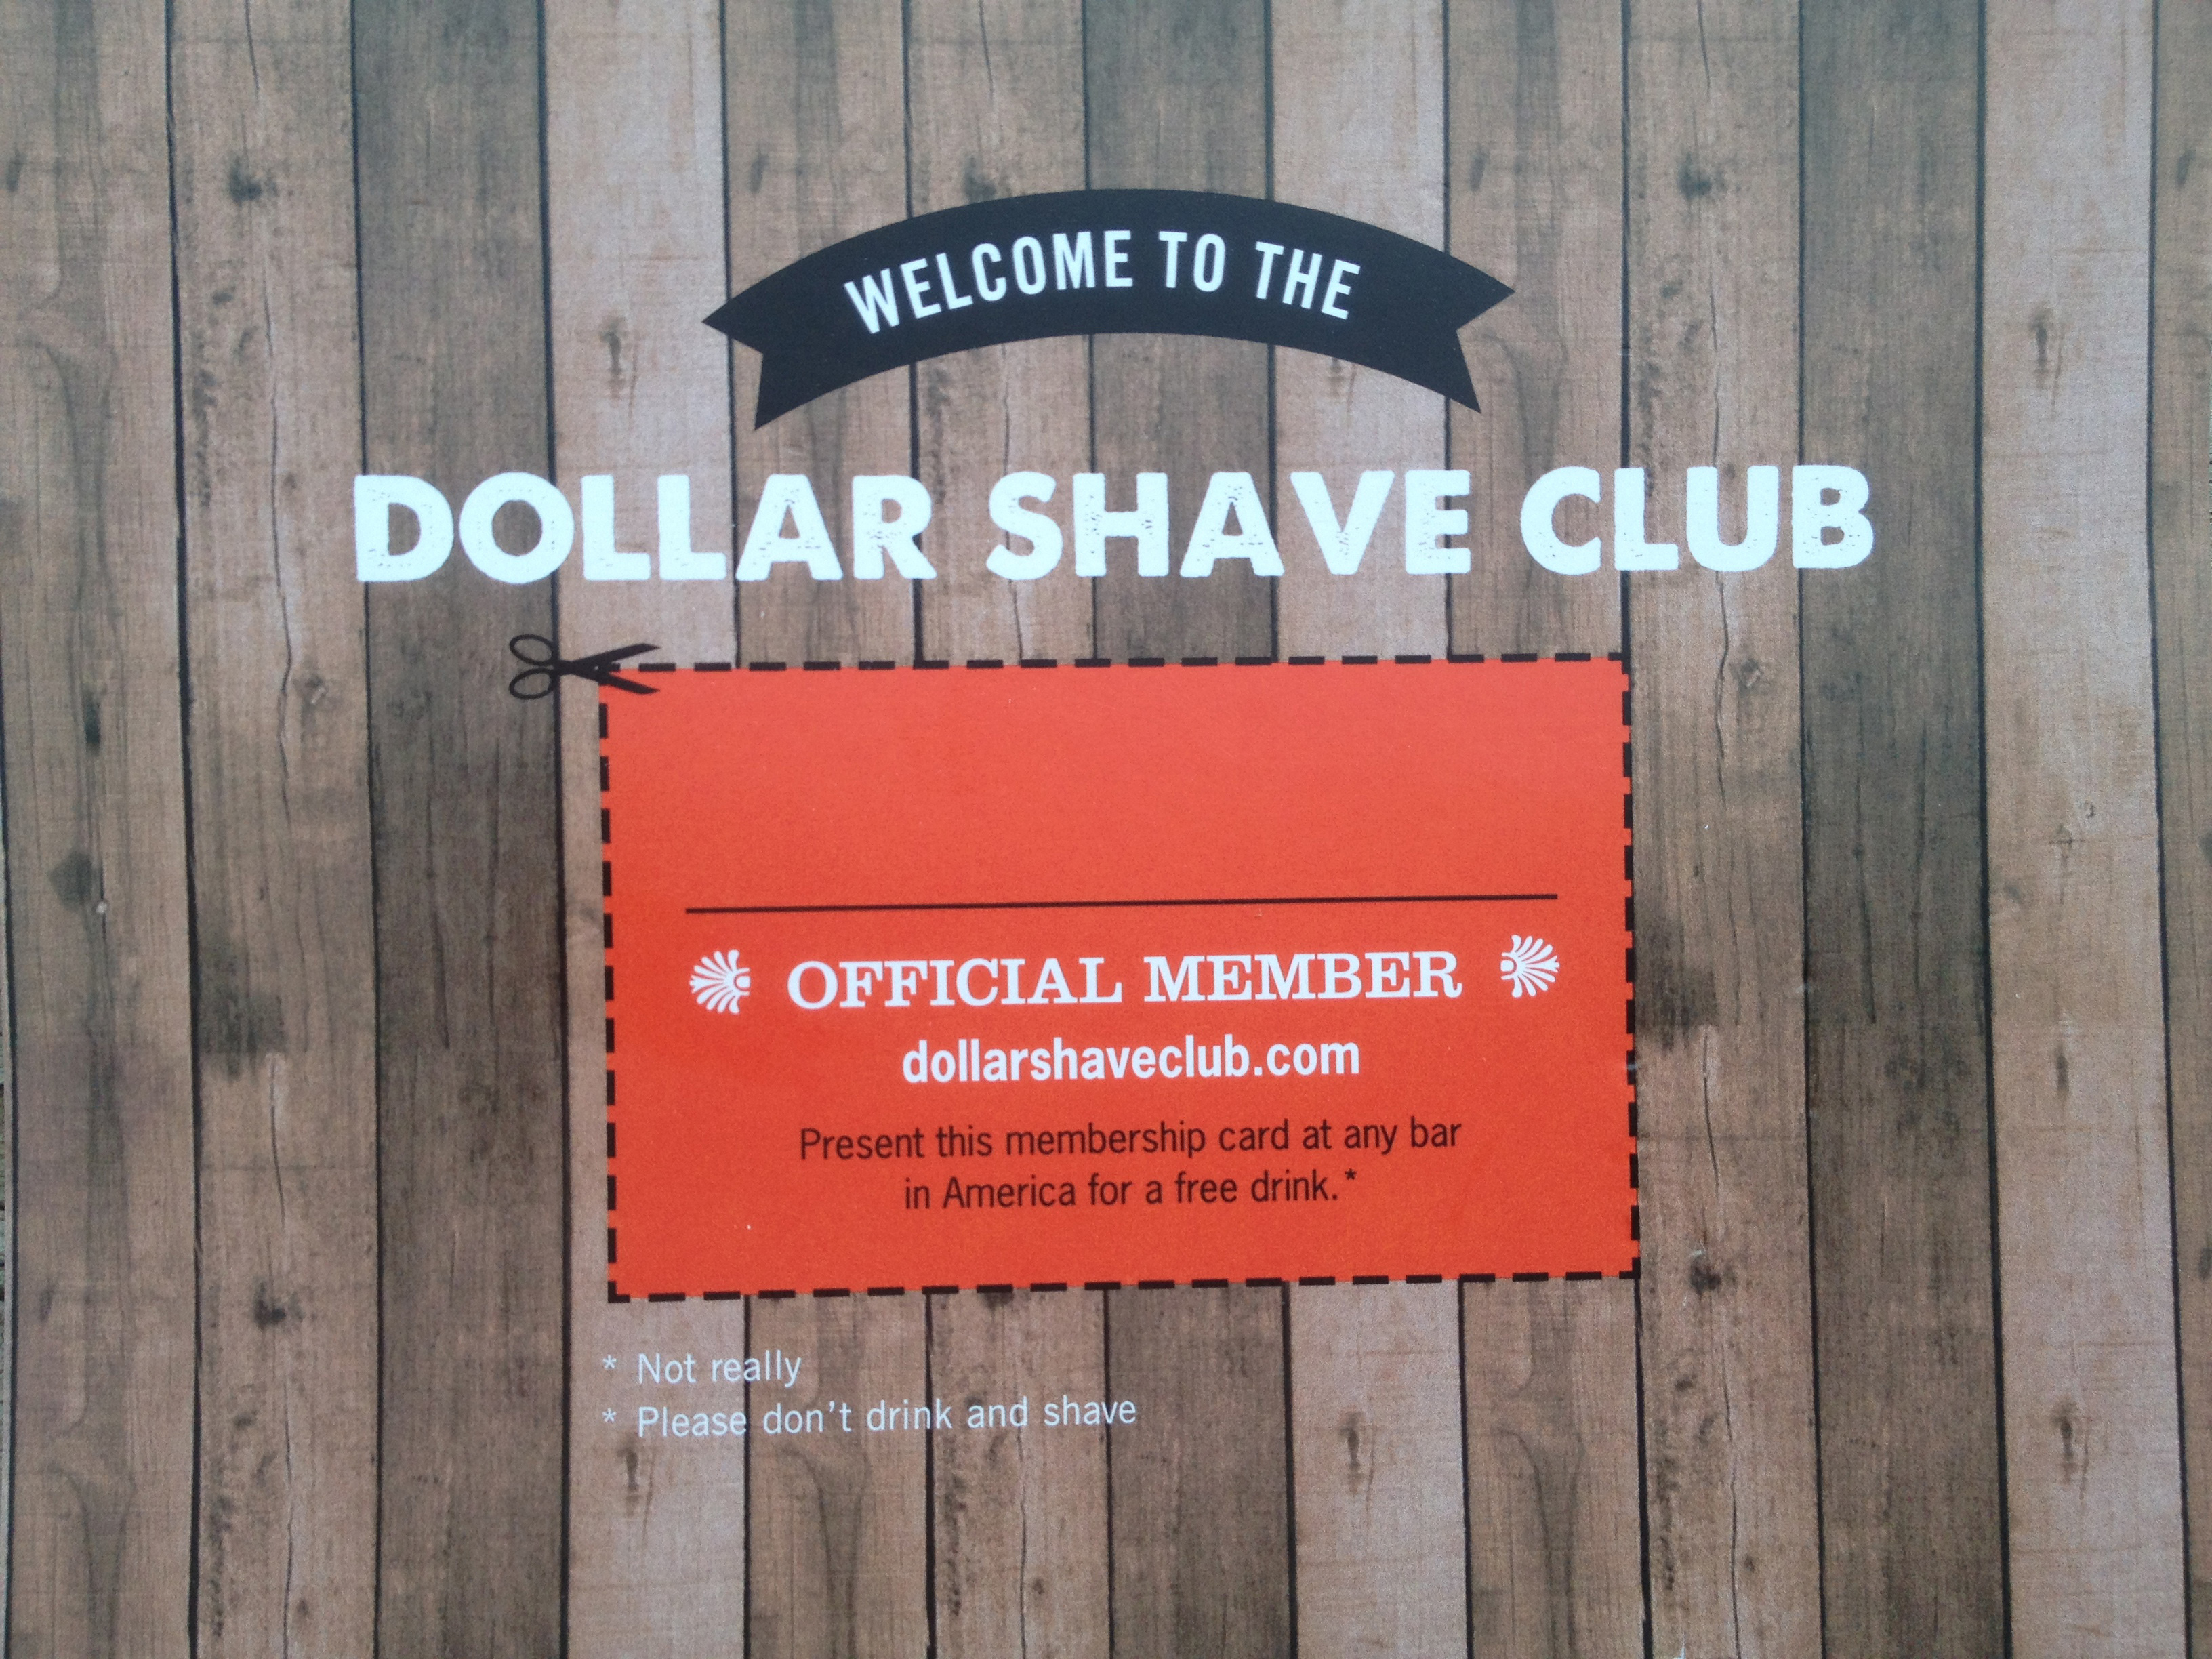 Dollar Shave Club Gift Certificates. By on July 5, Grazie a Facebook. Why Its a Great Gift Idea: 30 May, Technology News covering Gadgets, Websites, Apps, Photography, Medical, Space and Science from around the world brought to you by 15 Minute News.